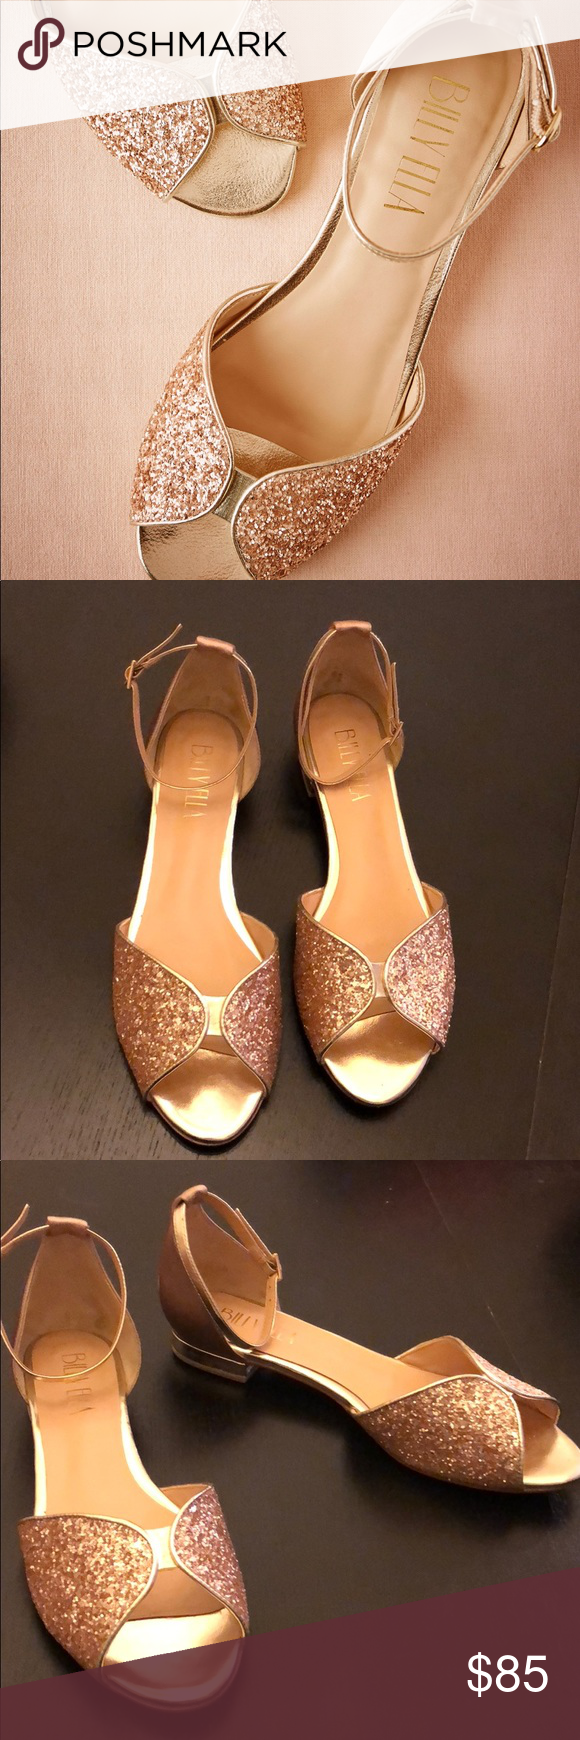 76d781986dec  Billy Ella  Champagne Jeni Flats Sparkle at the toes and shimmery  detailing at the heel keep these champagne peep-toes glamorous! Ankle strap.